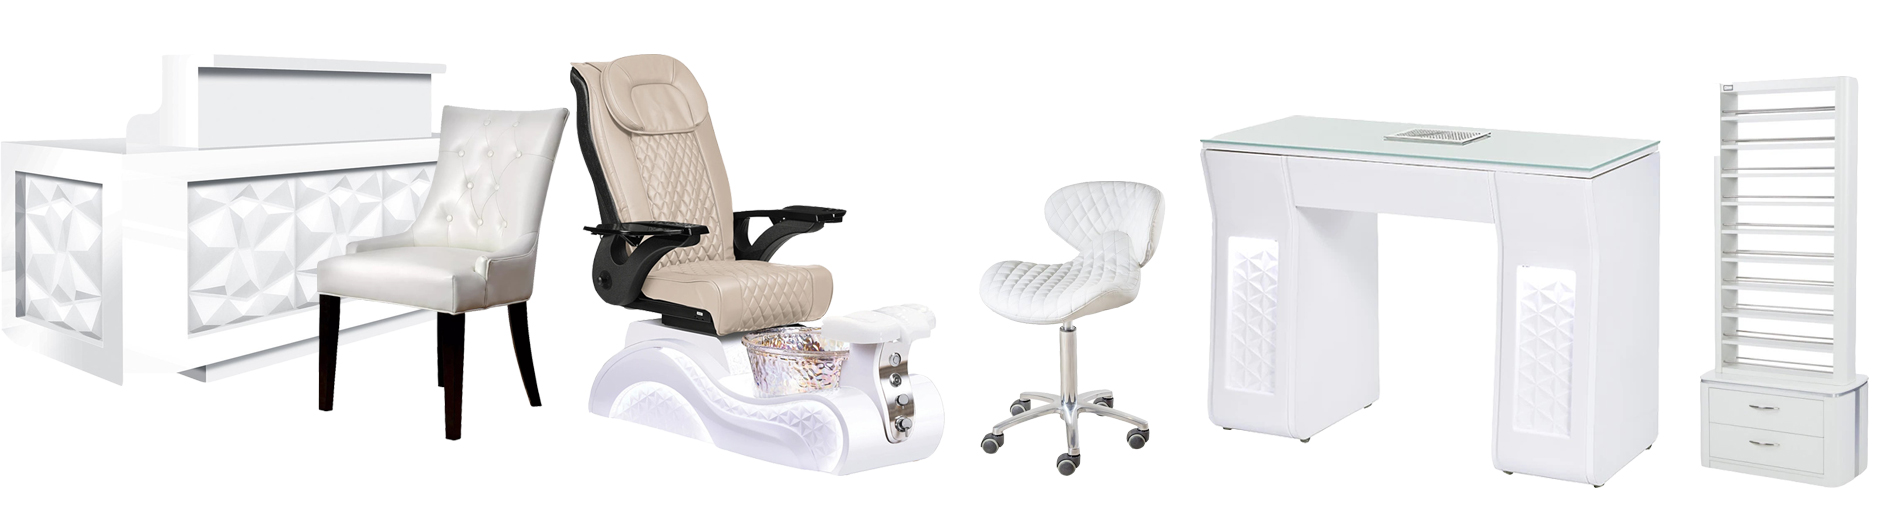 lux spa pedicure chairs new nail salon massage pedicure chair wholesale china DS-W2015